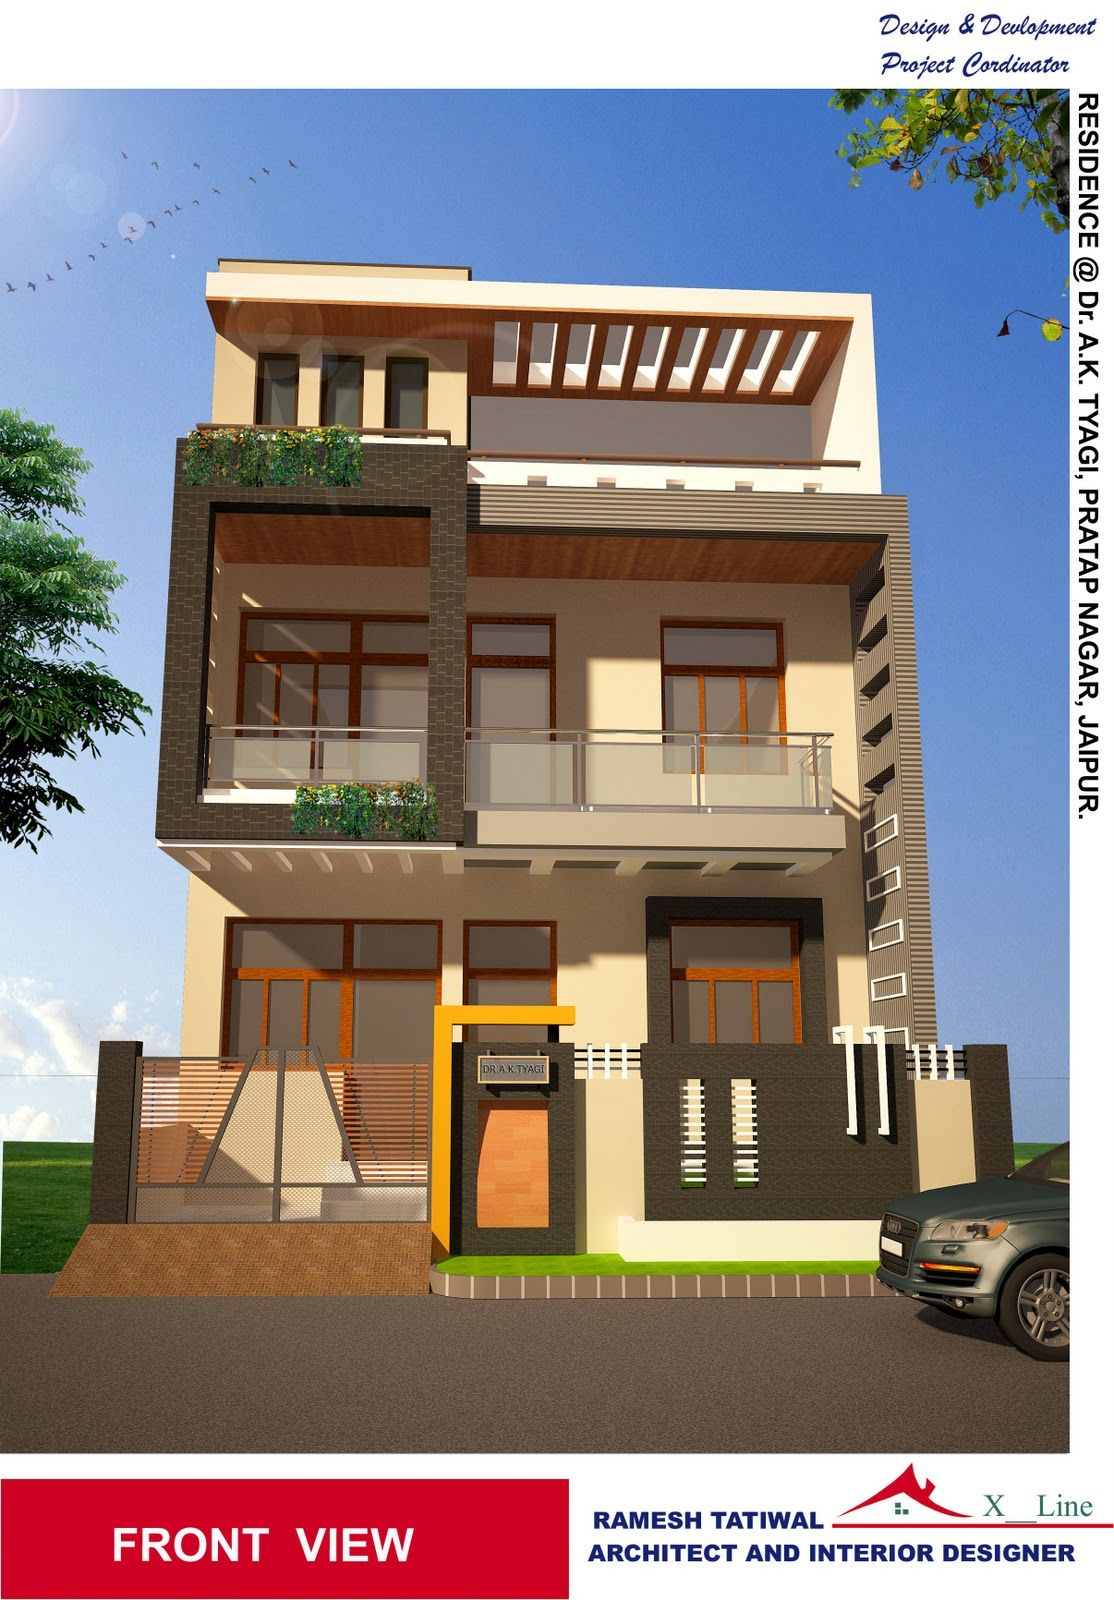 Housedesigns modern indian home architecture design from for Homedigine